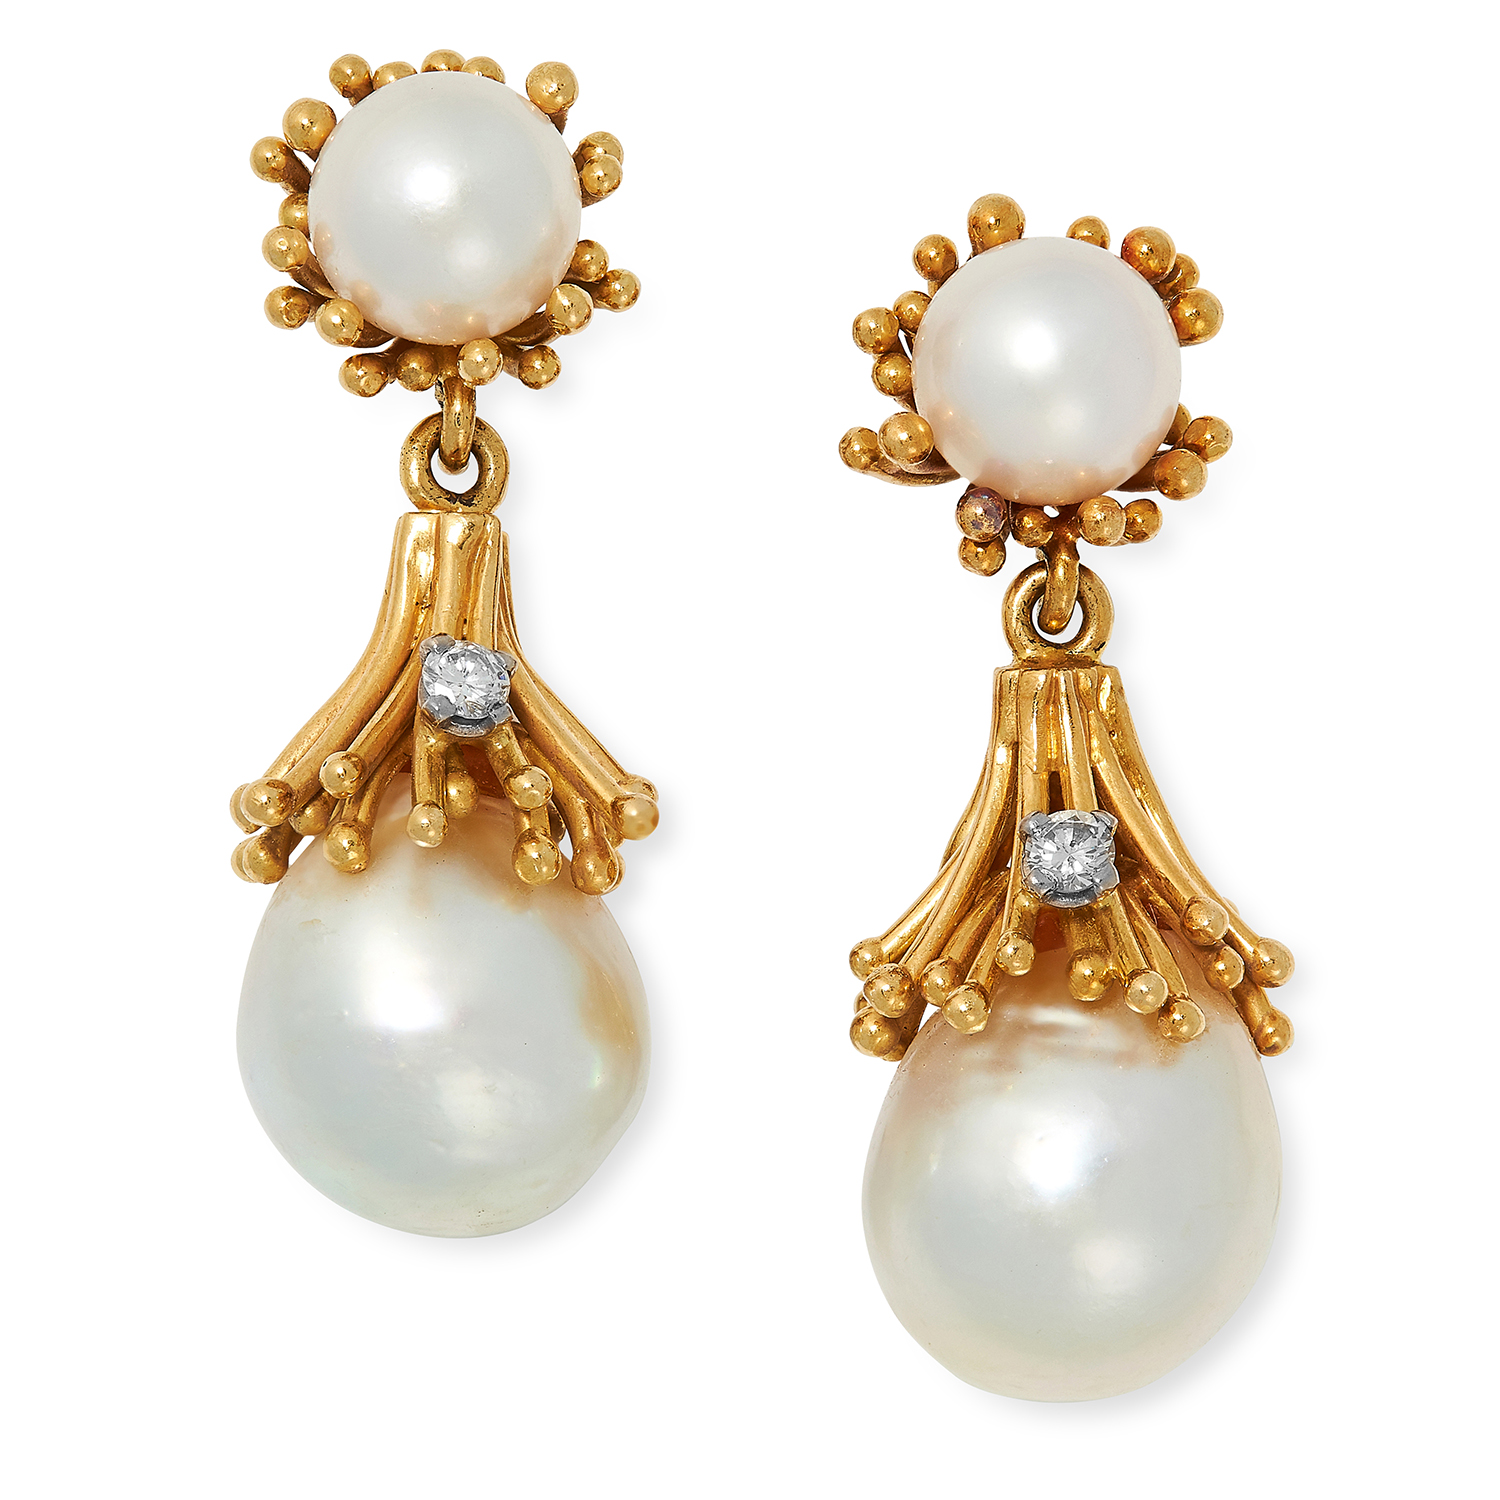 Los 8 - VINTAGE PEARL AND DIAMOND DROP EARRINGS, CIRCA 1970 each set with two pearls and a round cut